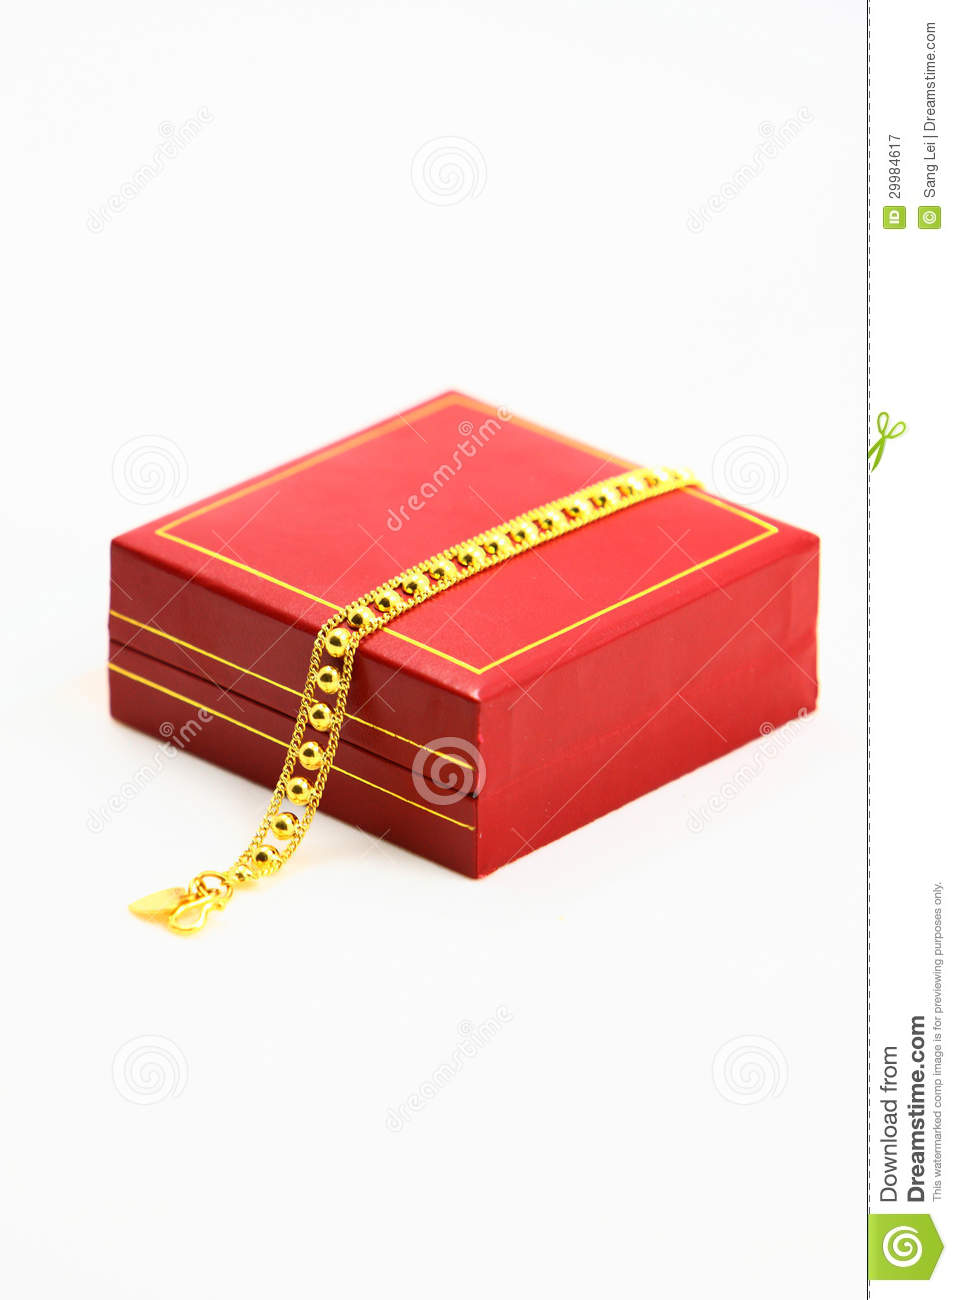 Gold Bracelet and gifts box